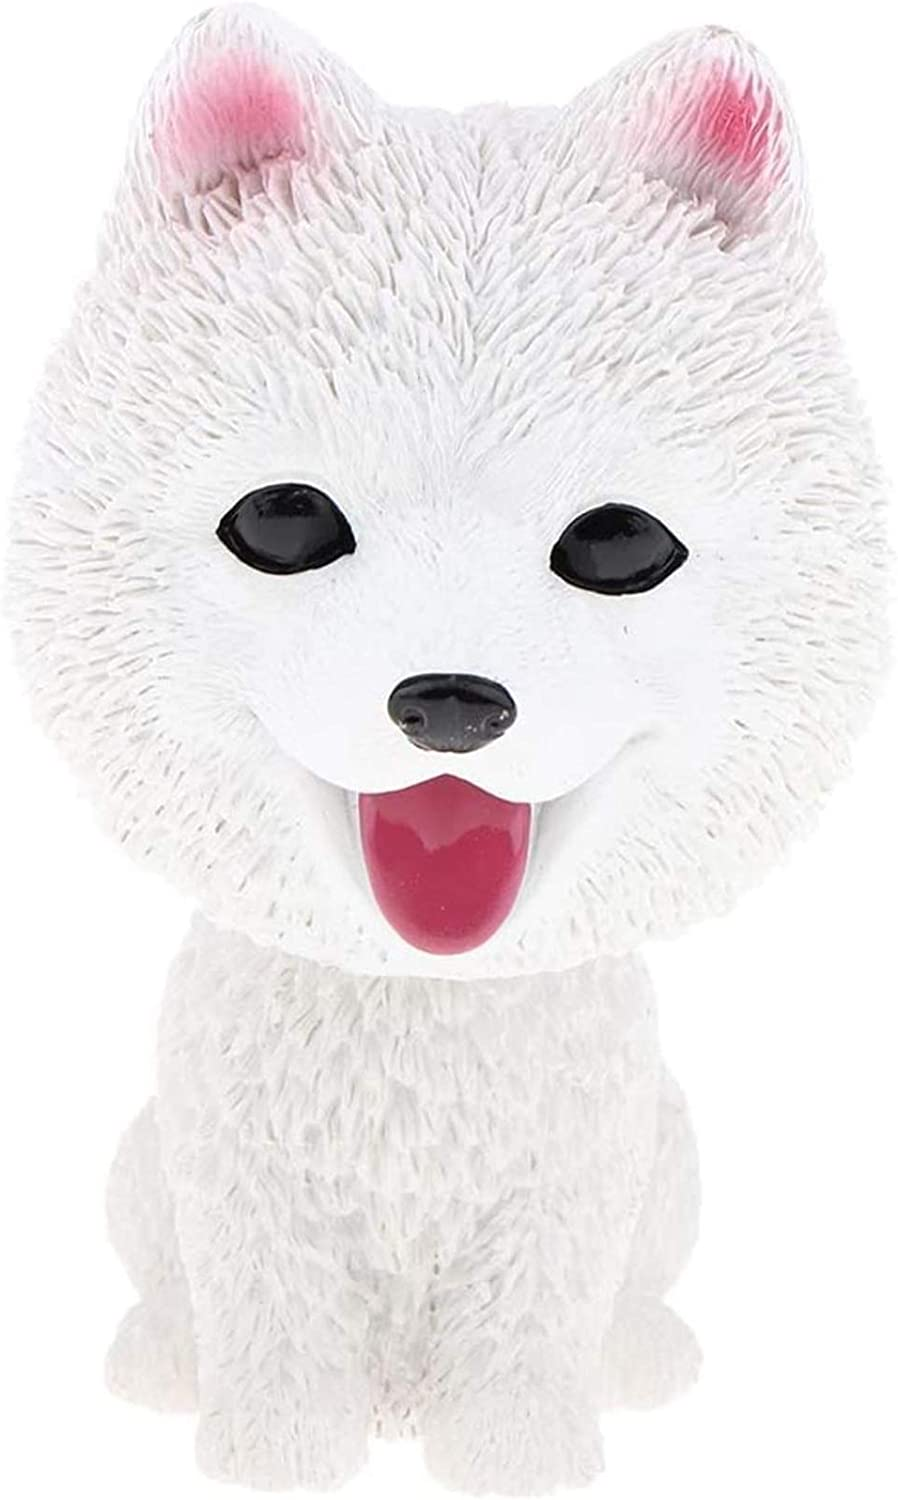 TONG Resin San Attention brand Antonio Mall Shaking Head Dog Puppy Bobblehead Bobbing Toy A Heads